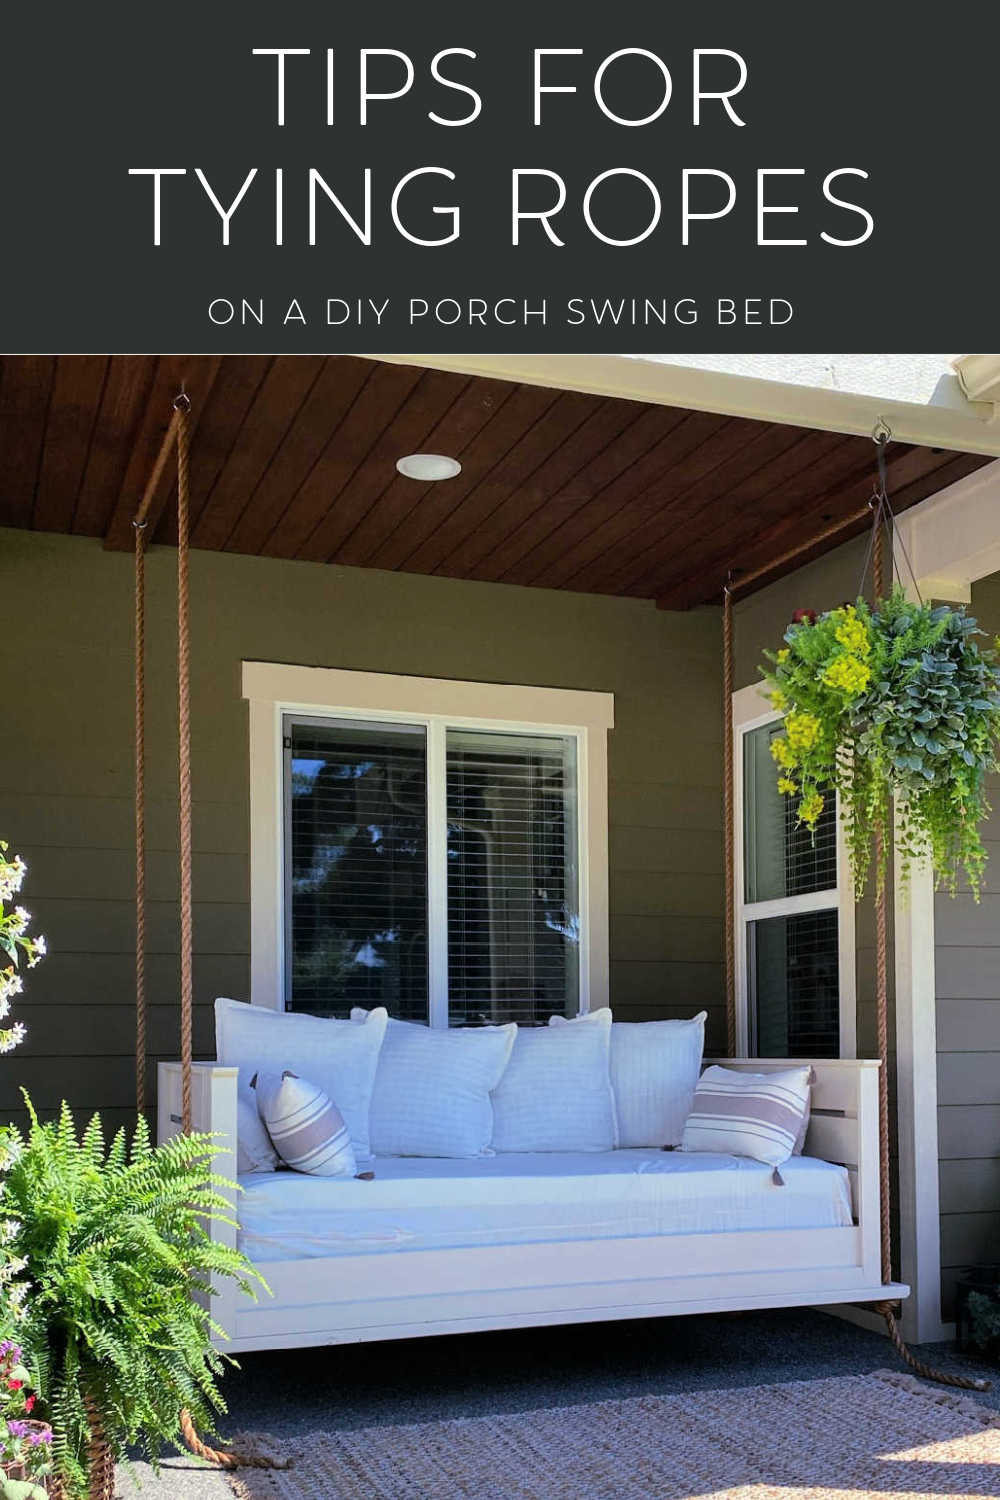 TIPS FOR TYING ROPES ON DIY PORCH SWING